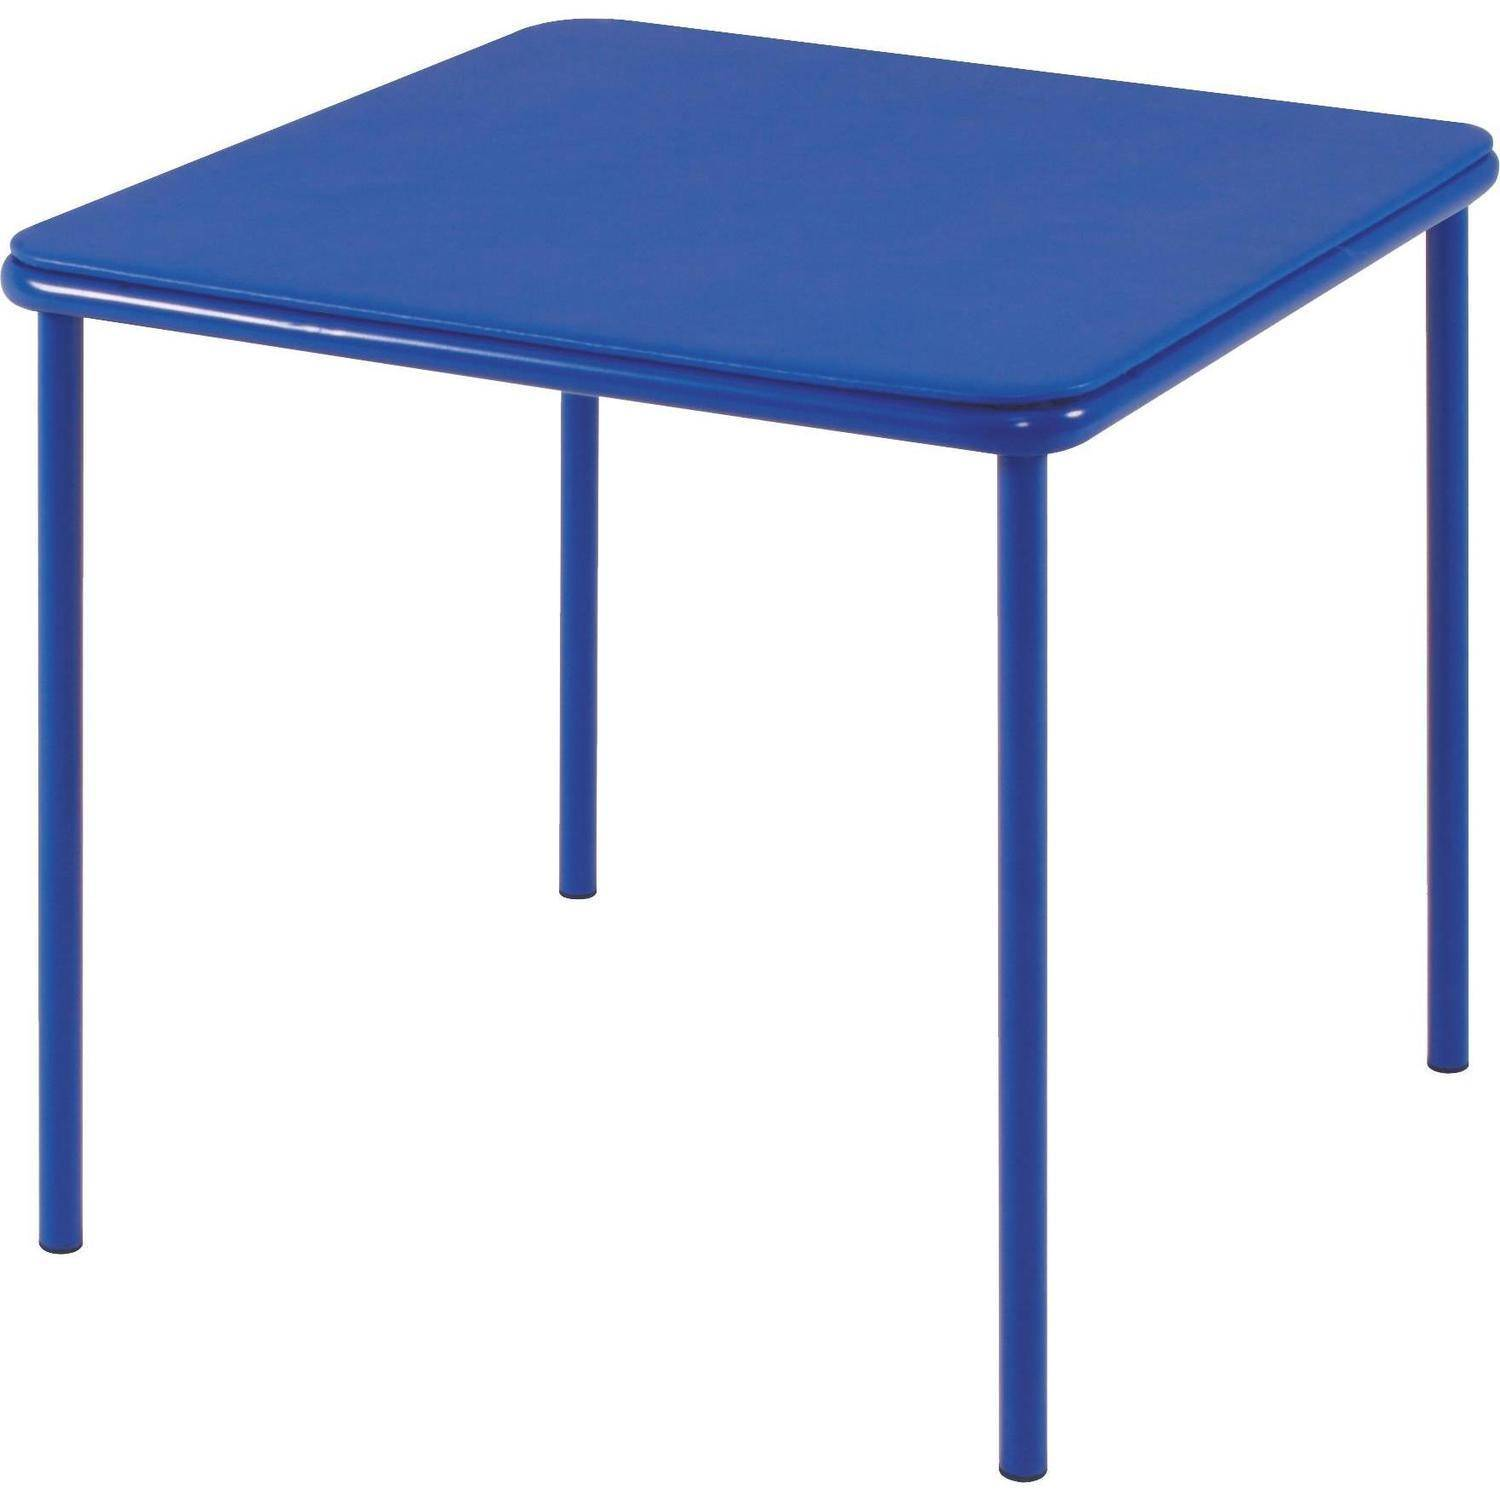 Safety 1st   Childrenu0027s Folding Table, Multiple Colors Image 1 ...